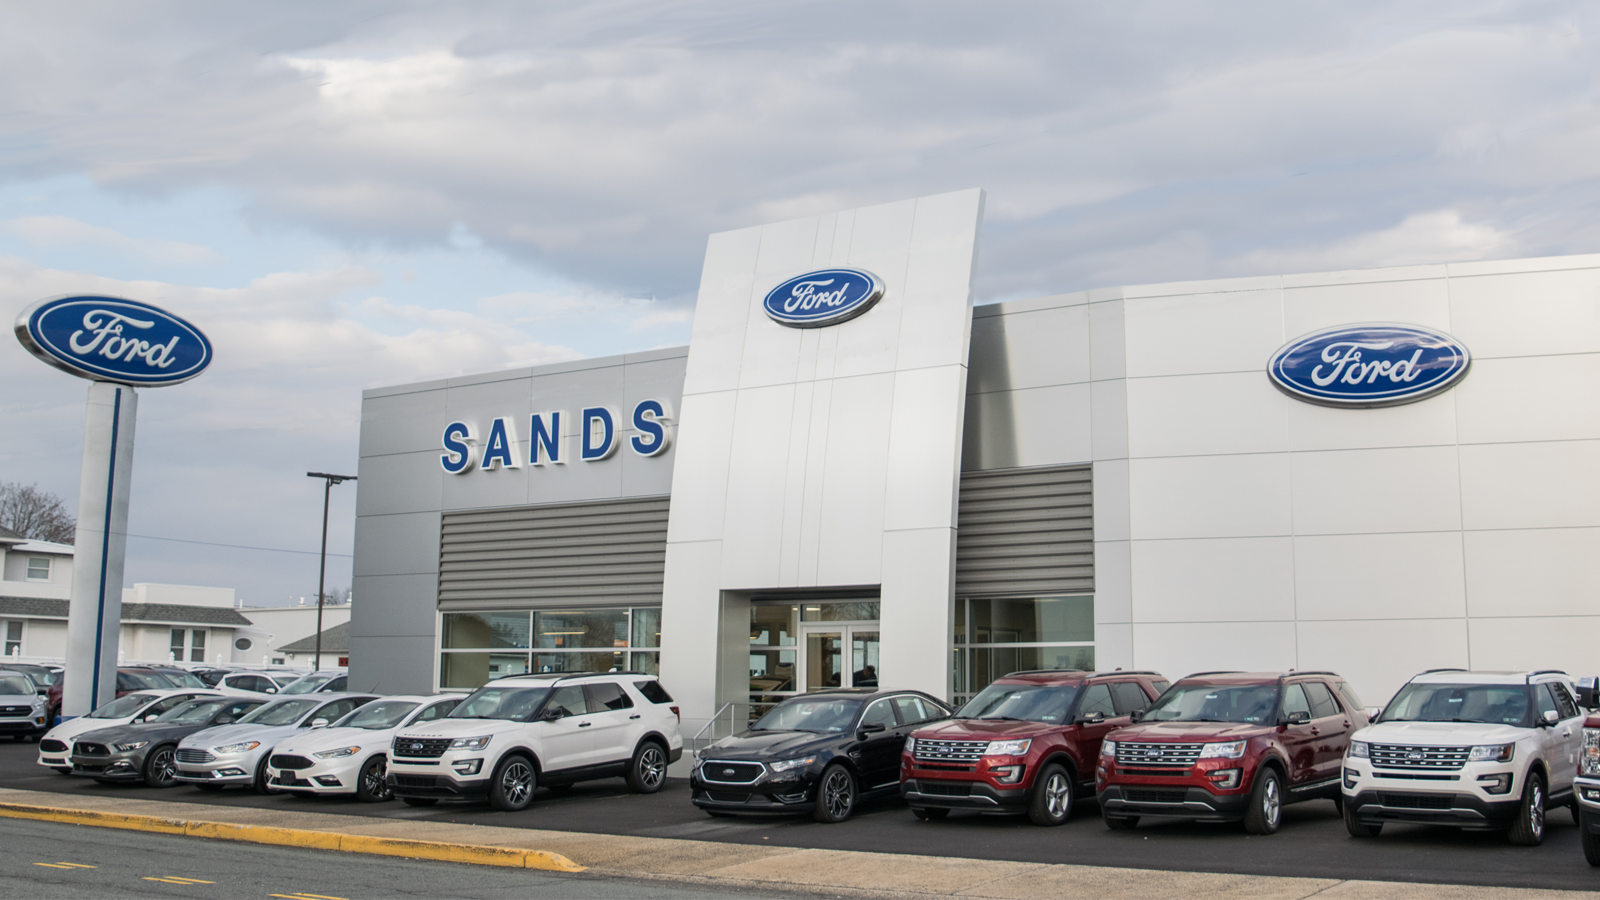 sands auto group | new chrysler, ford, dodge, jeep, ram dealership in ,